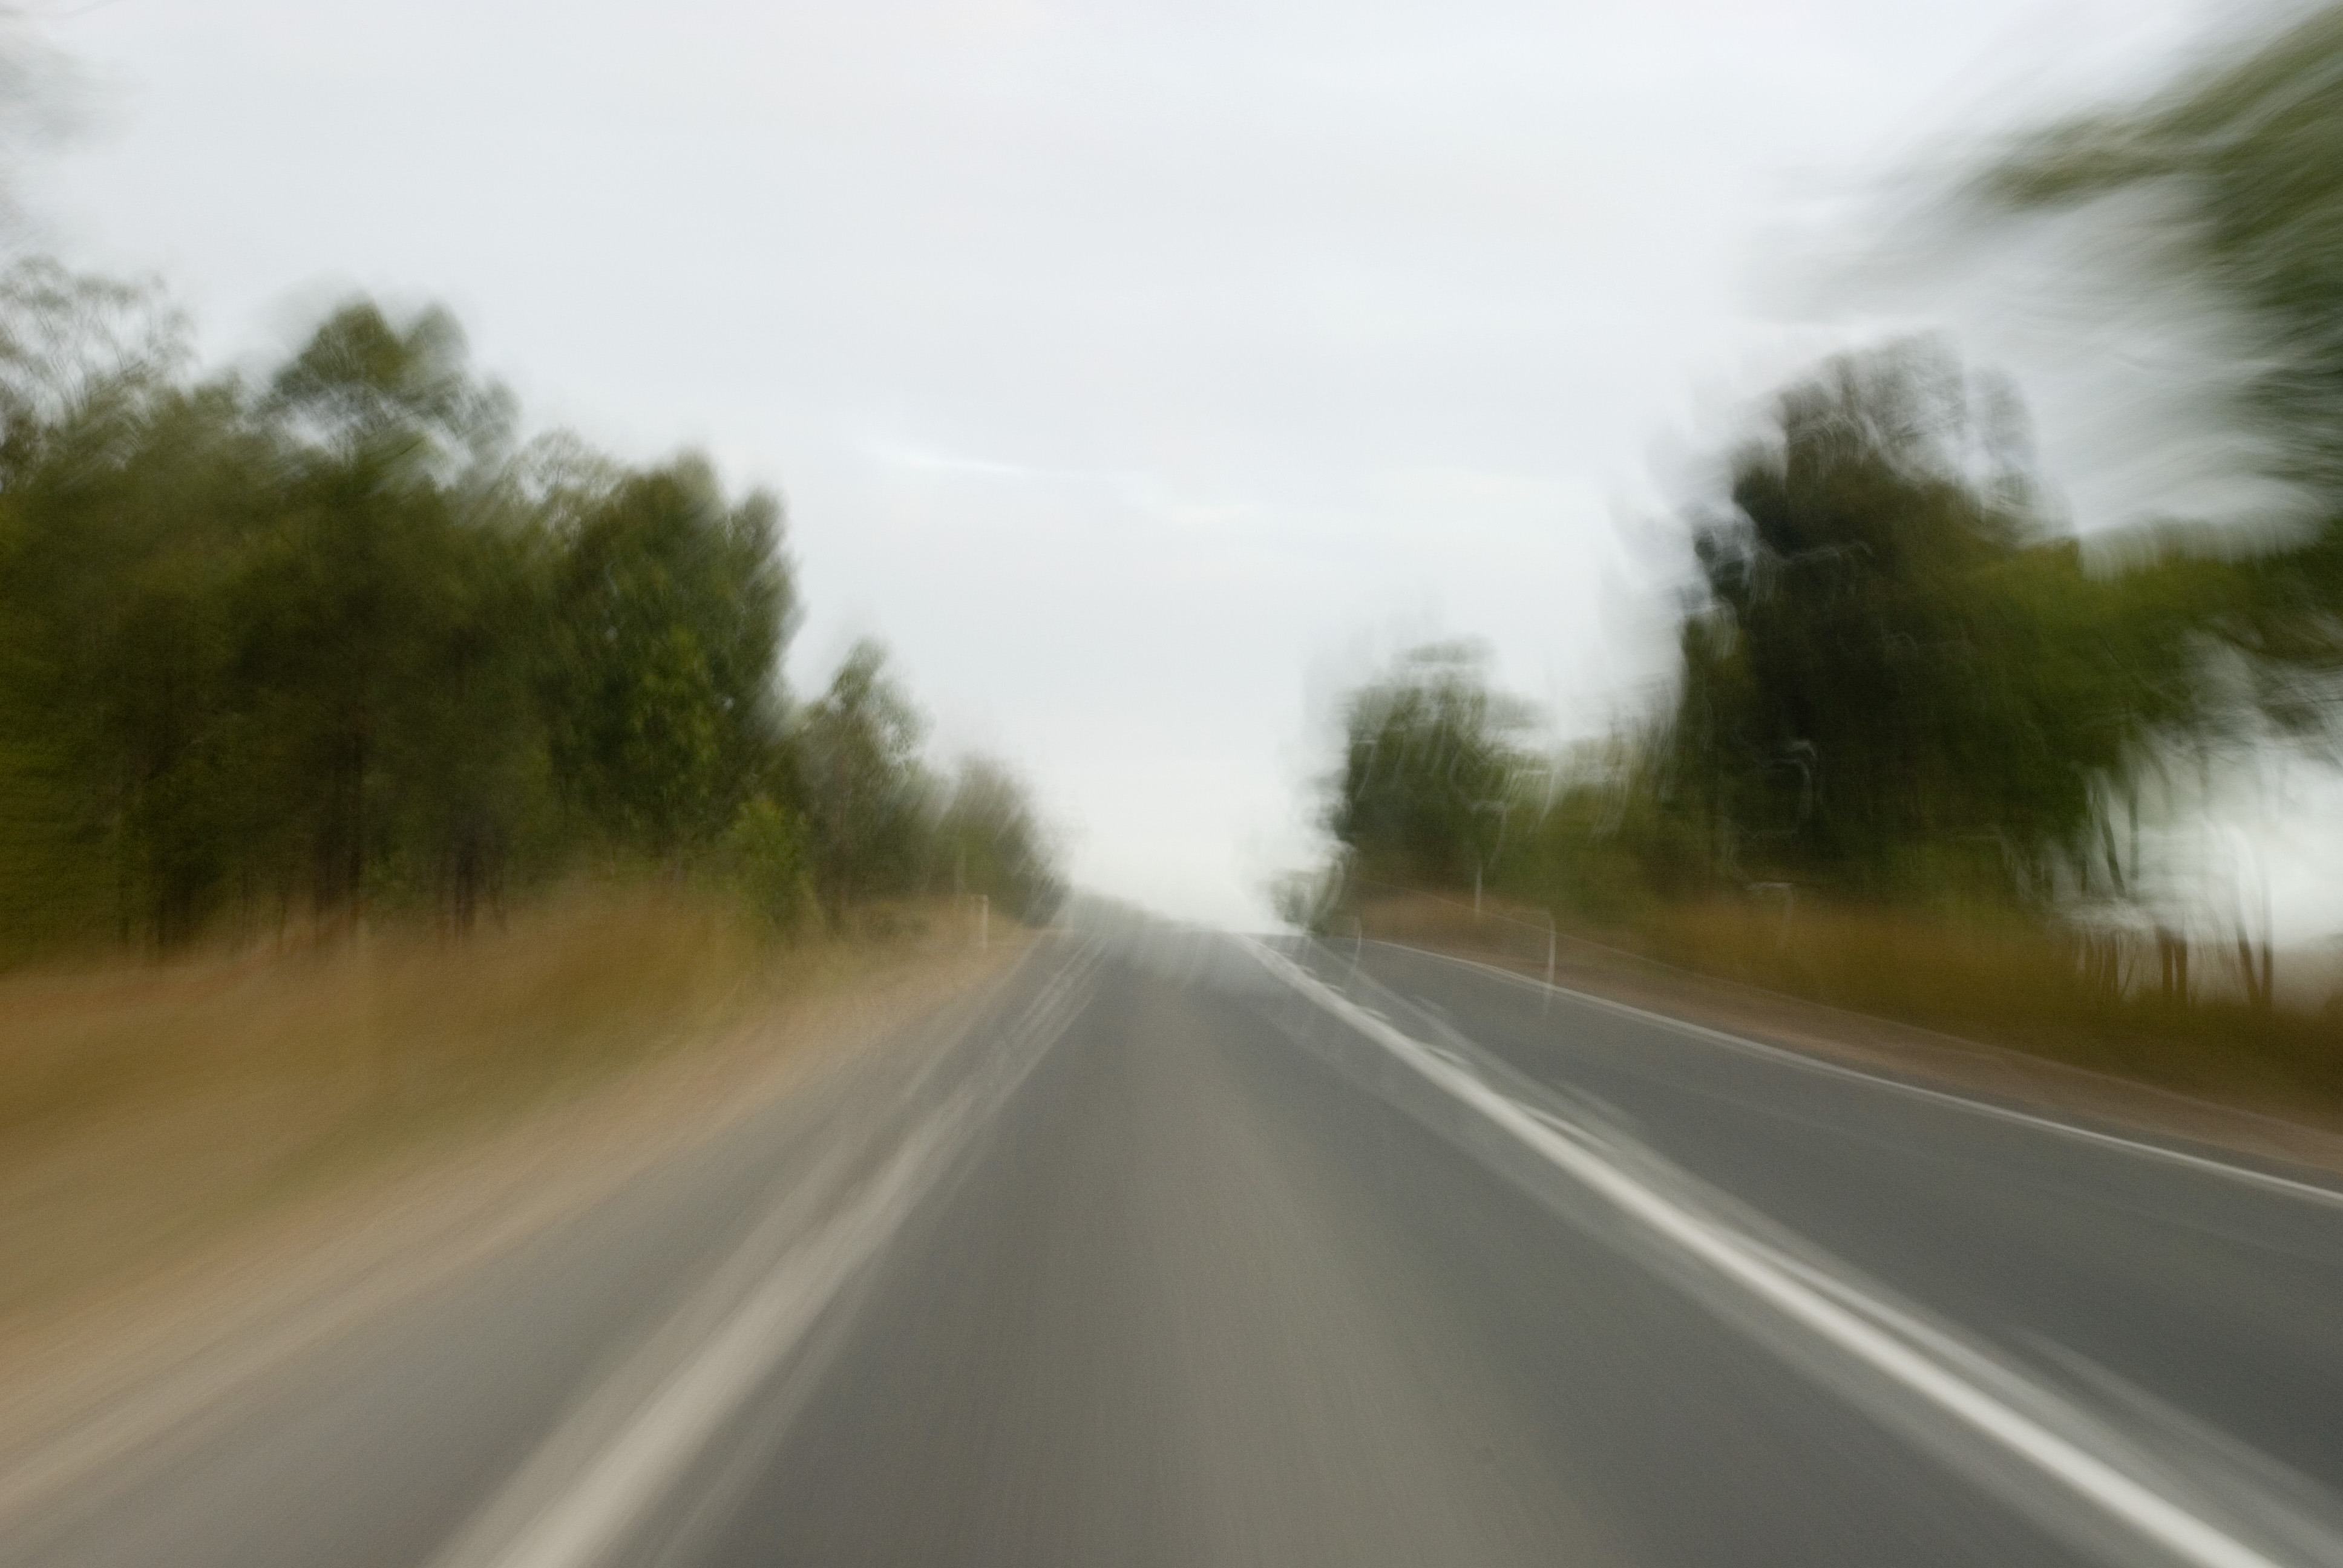 surreal blur on a long highway drive